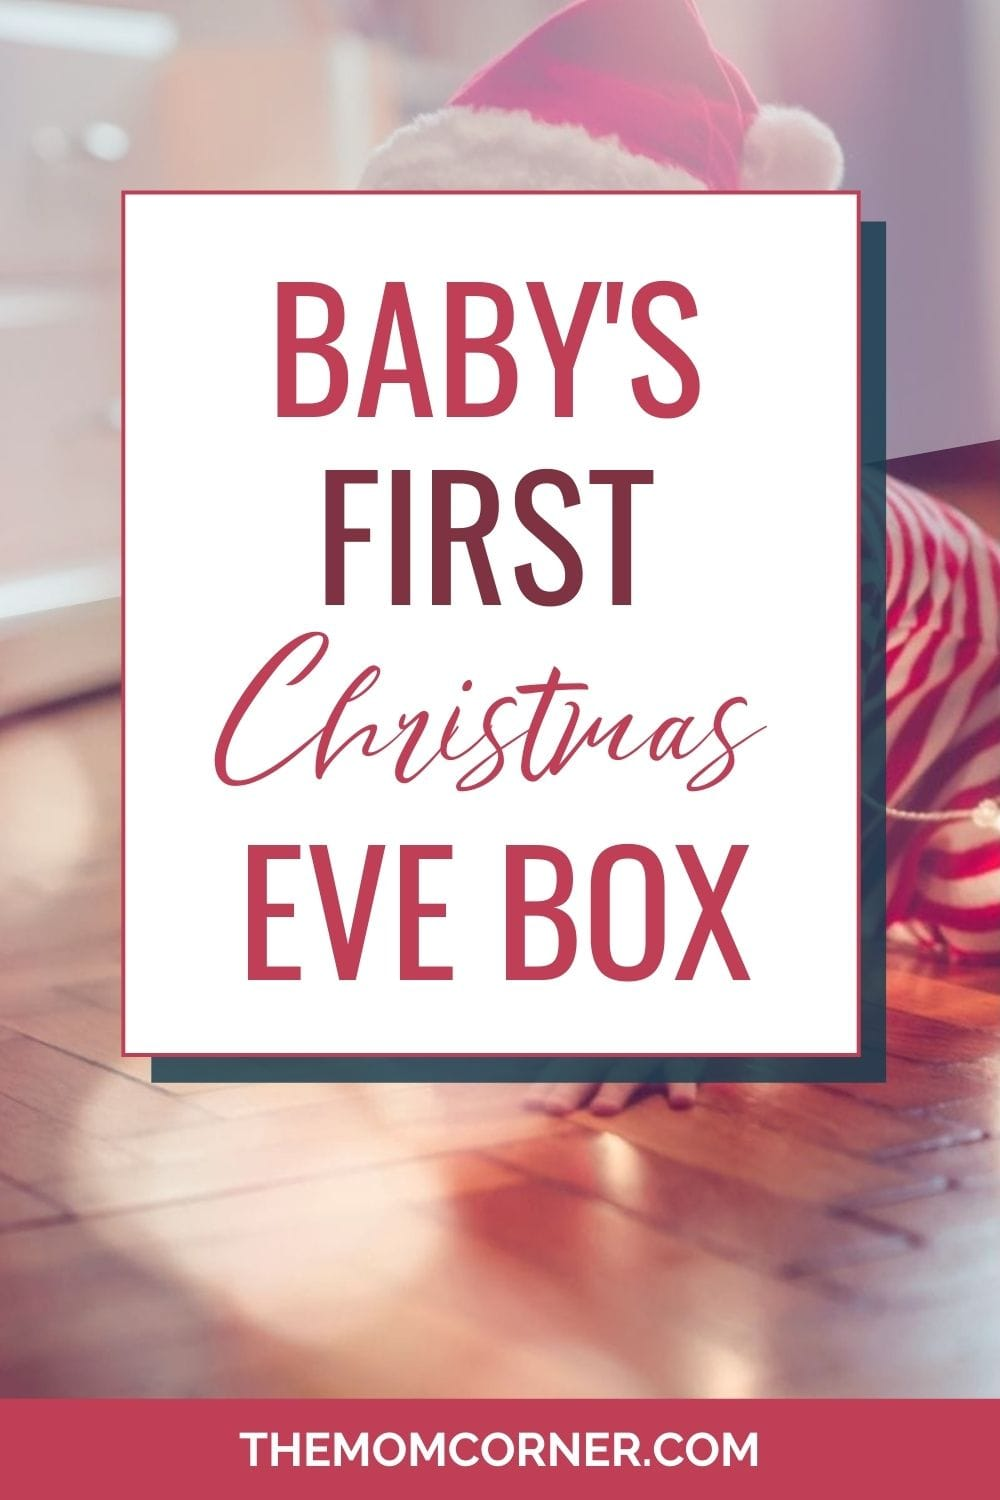 How To Make An Amazing Christmas Eve Box For Baby Themomcorner